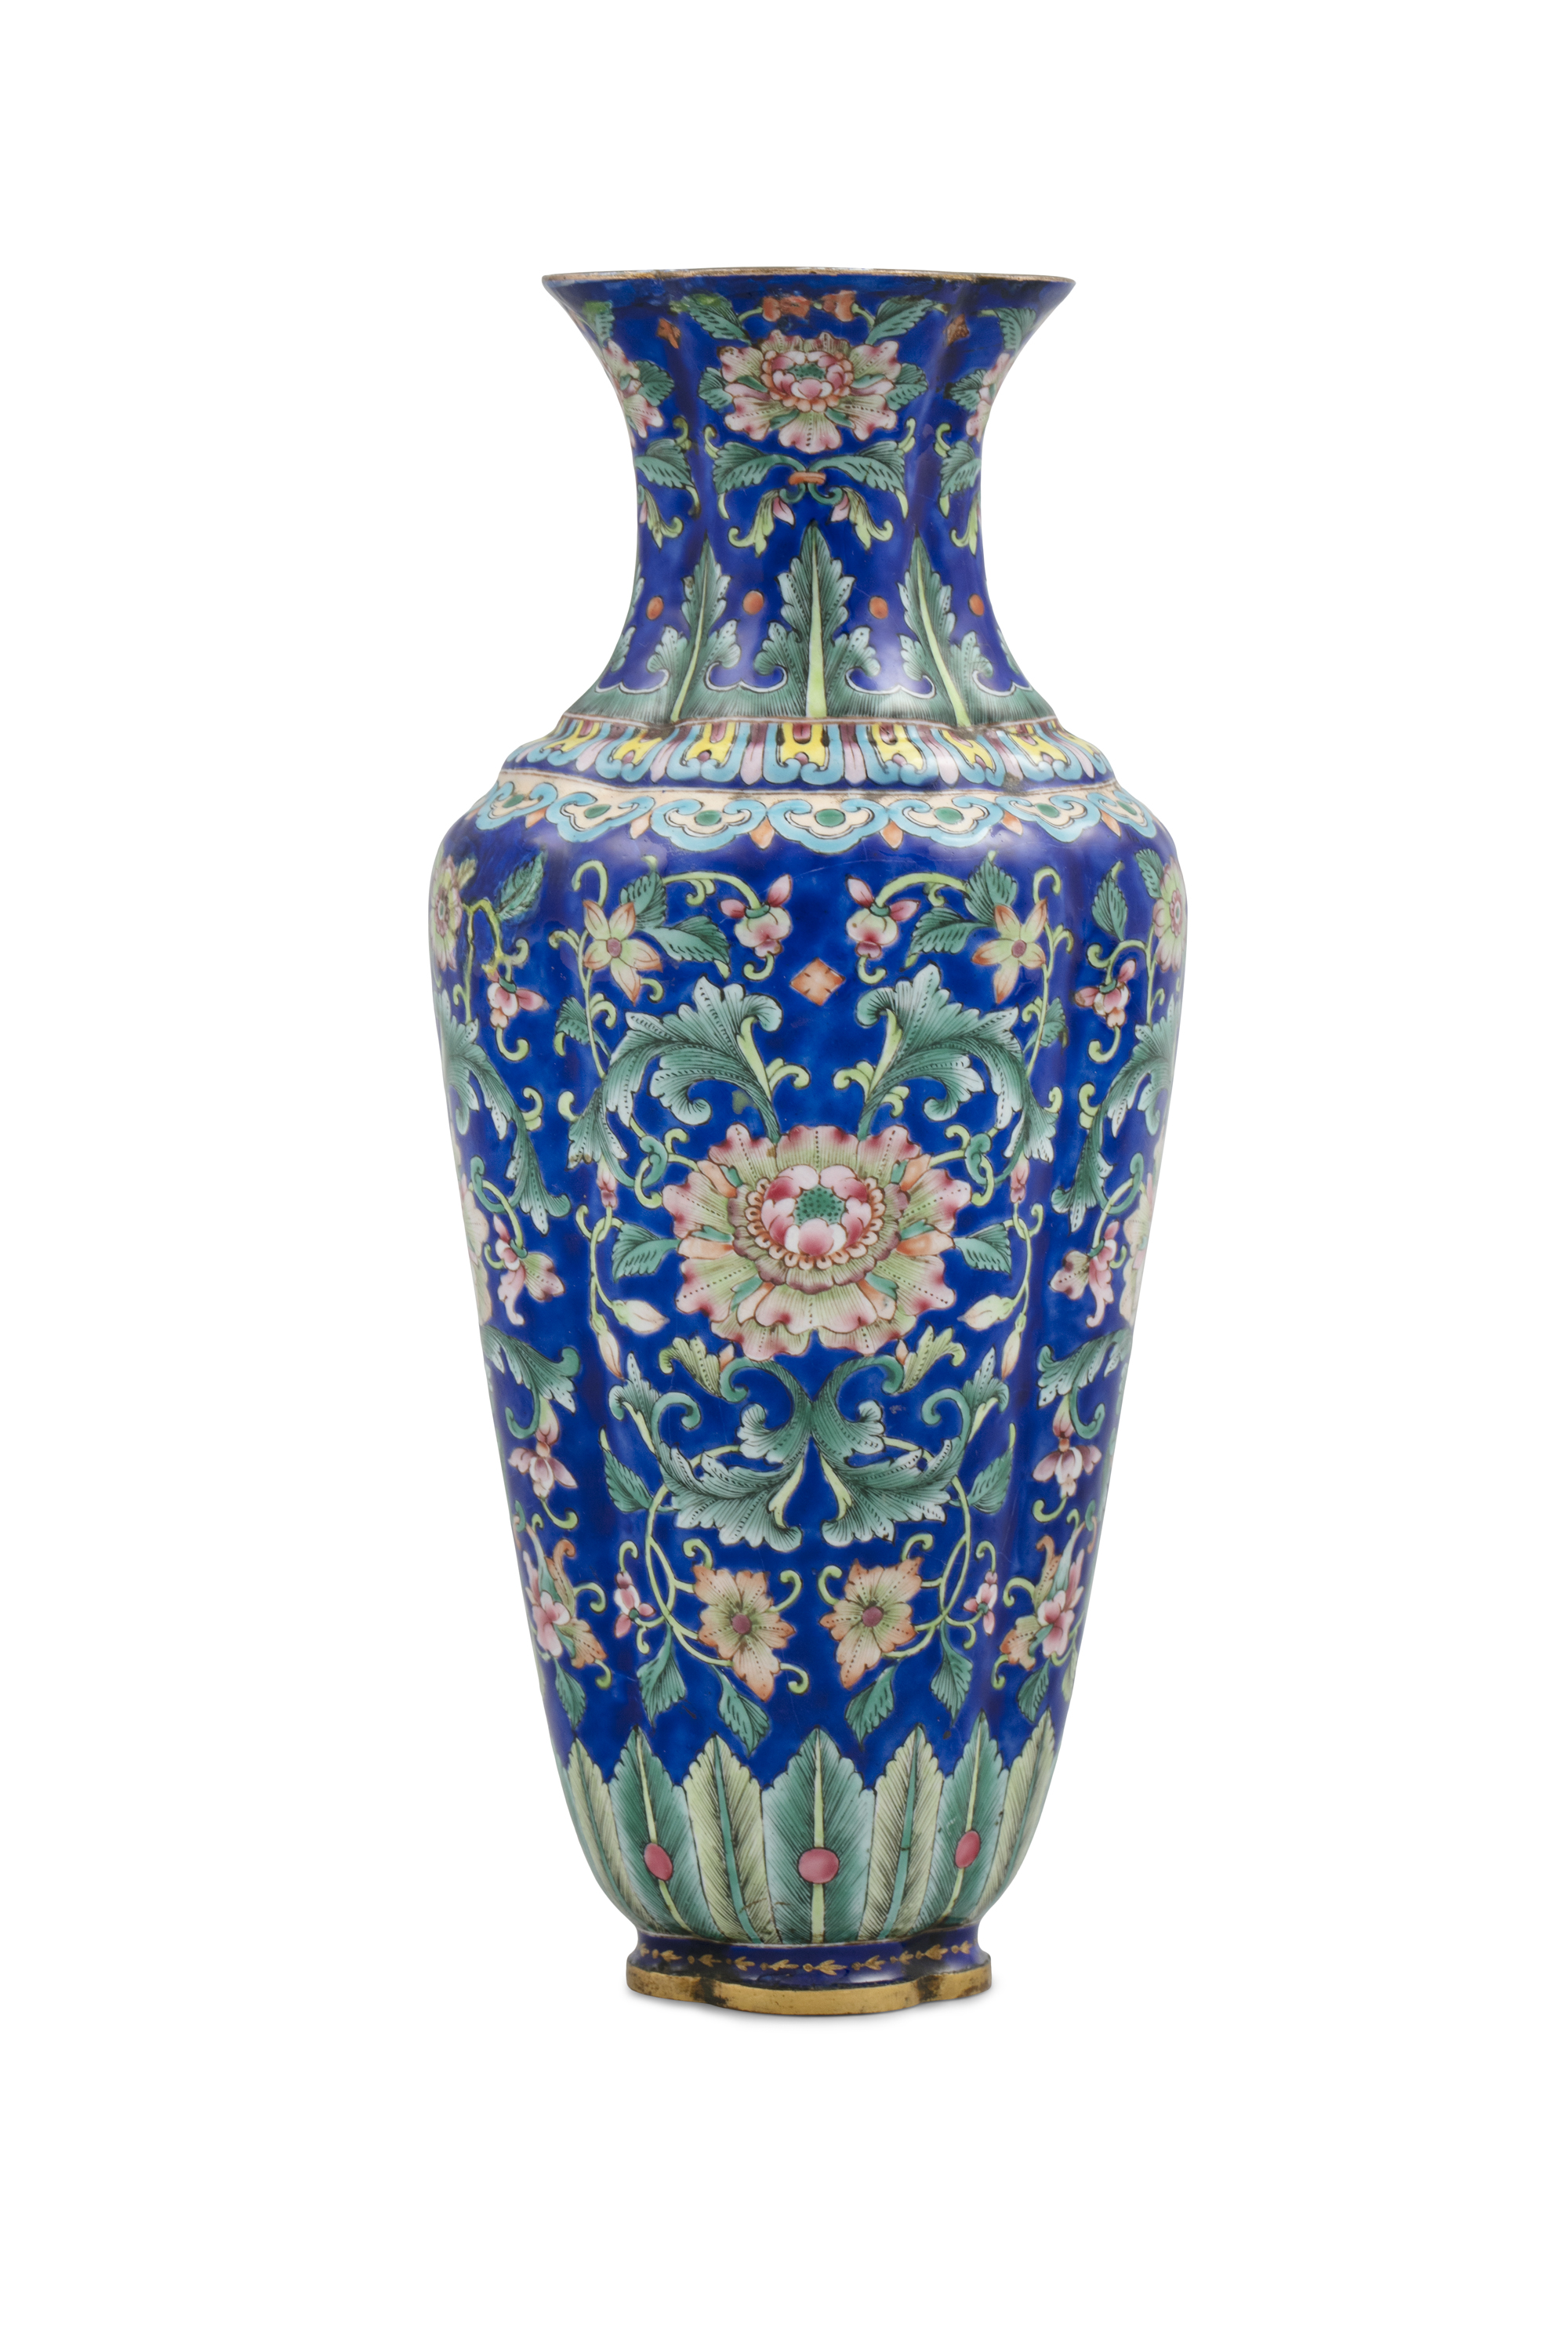 AN ENAMELED COPPER QUATREFOIL VASE China, Beijing, Qing Dynasty, 18th to 19th century Richly adorned